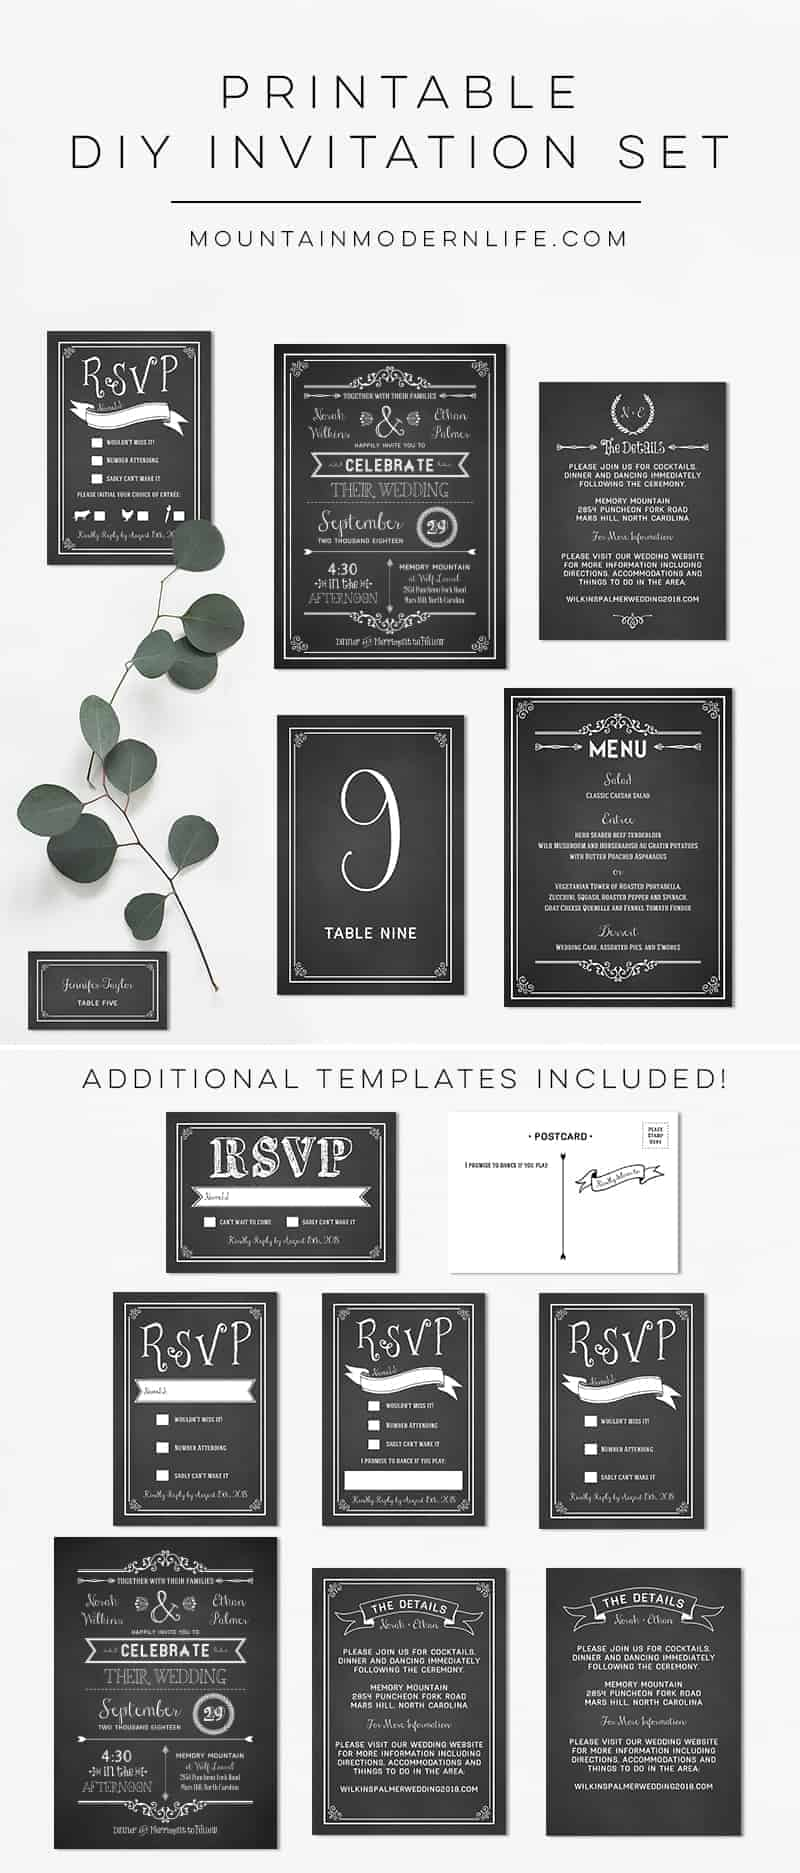 Planning a rustic or vintage-inspired wedding? Instantly download this printable chalkboard DIY wedding invitation set and print as many copies as you need! MountainModernLife.com